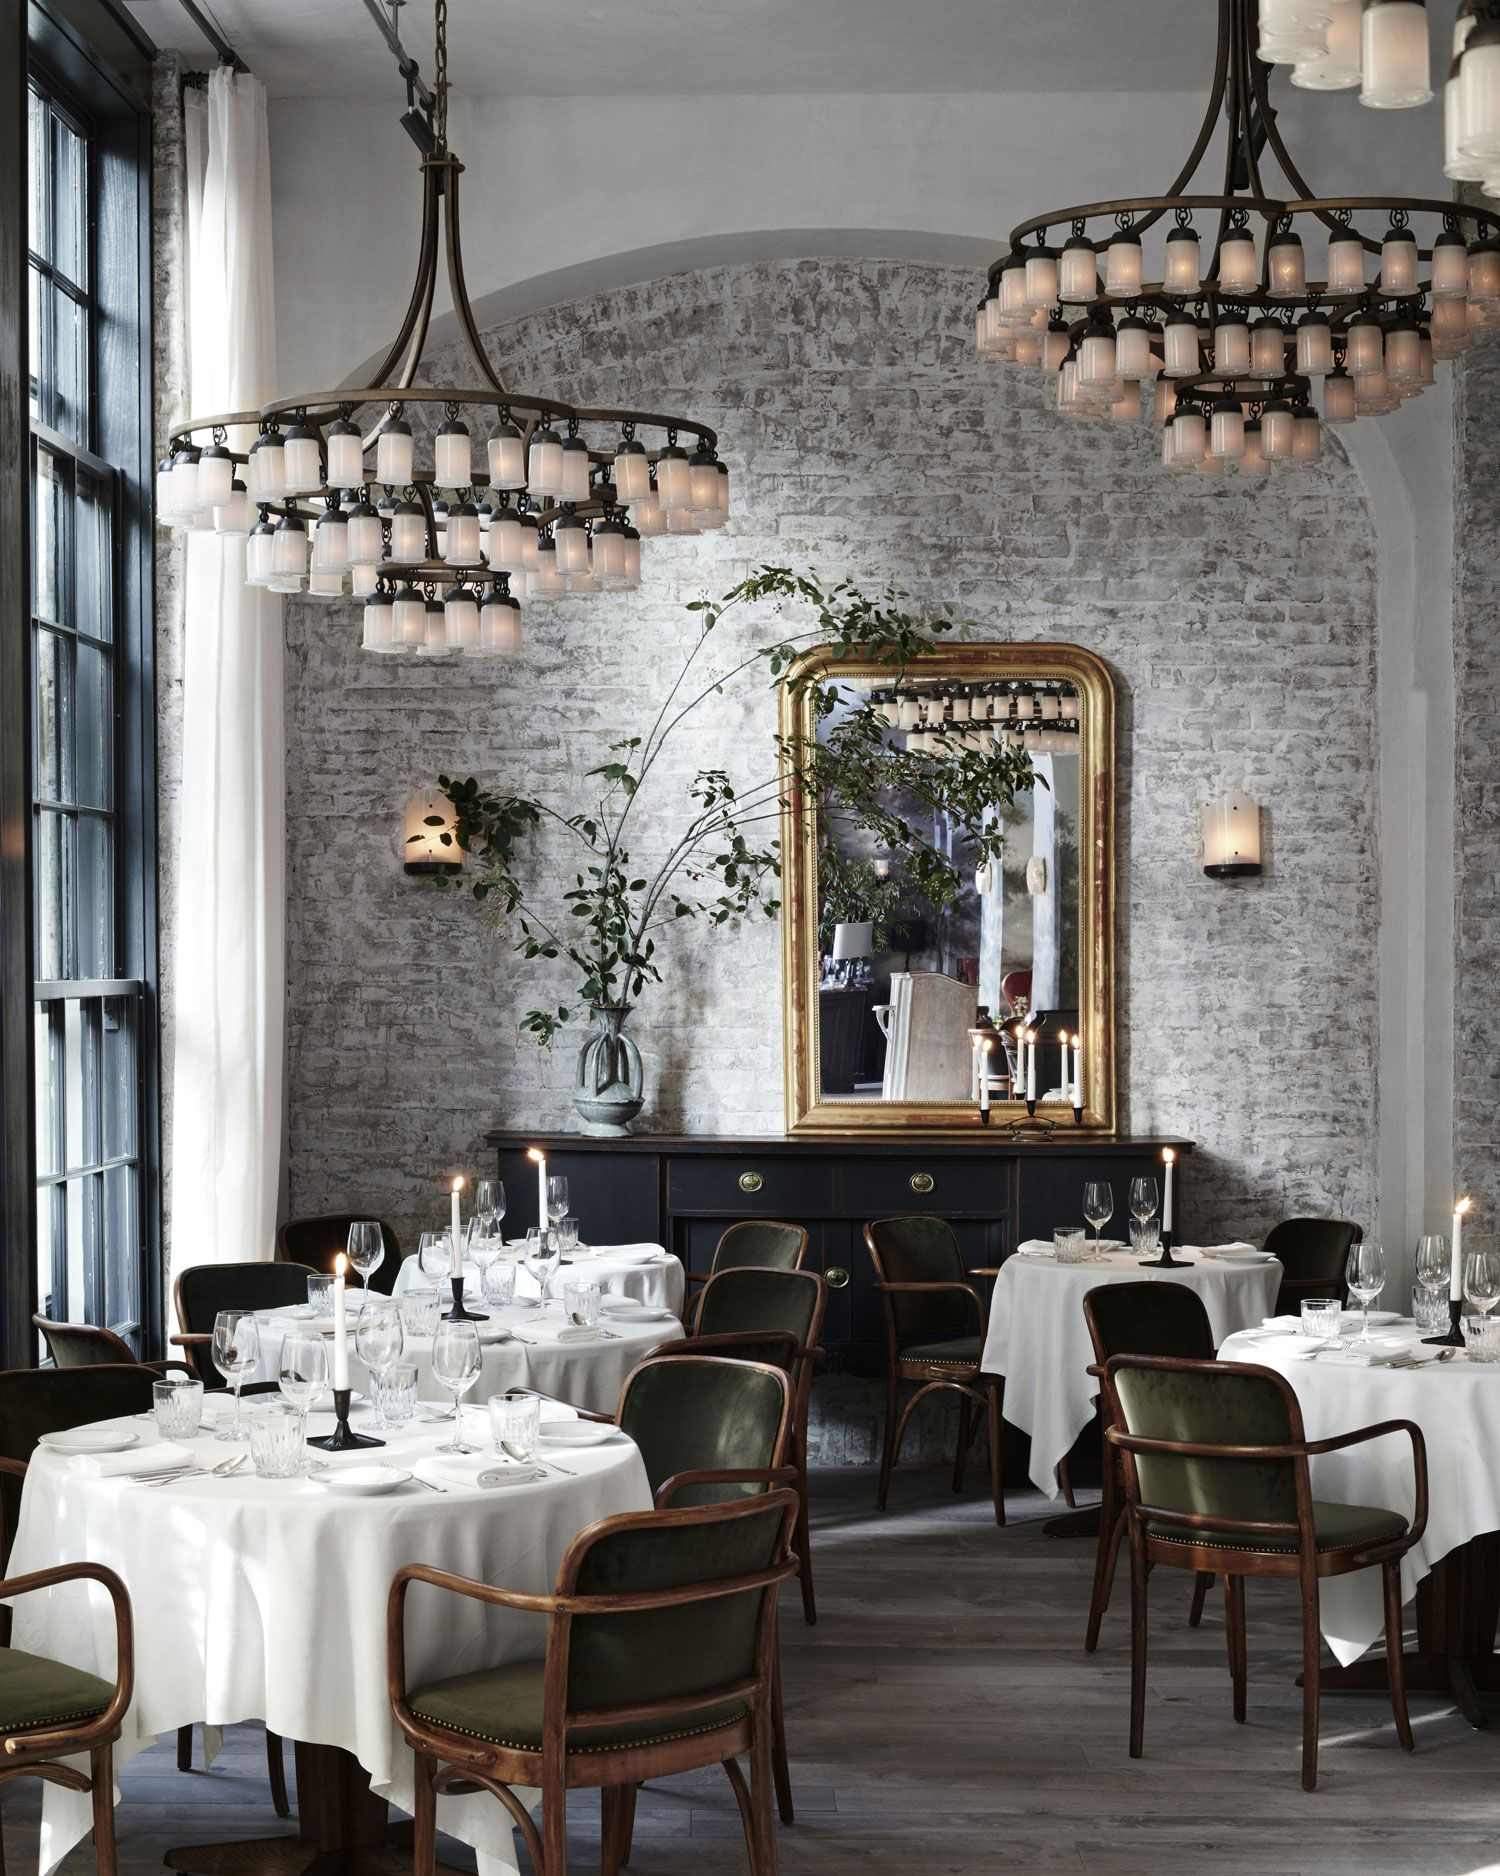 le coucou restaurant in new yorkroman and williams | roman